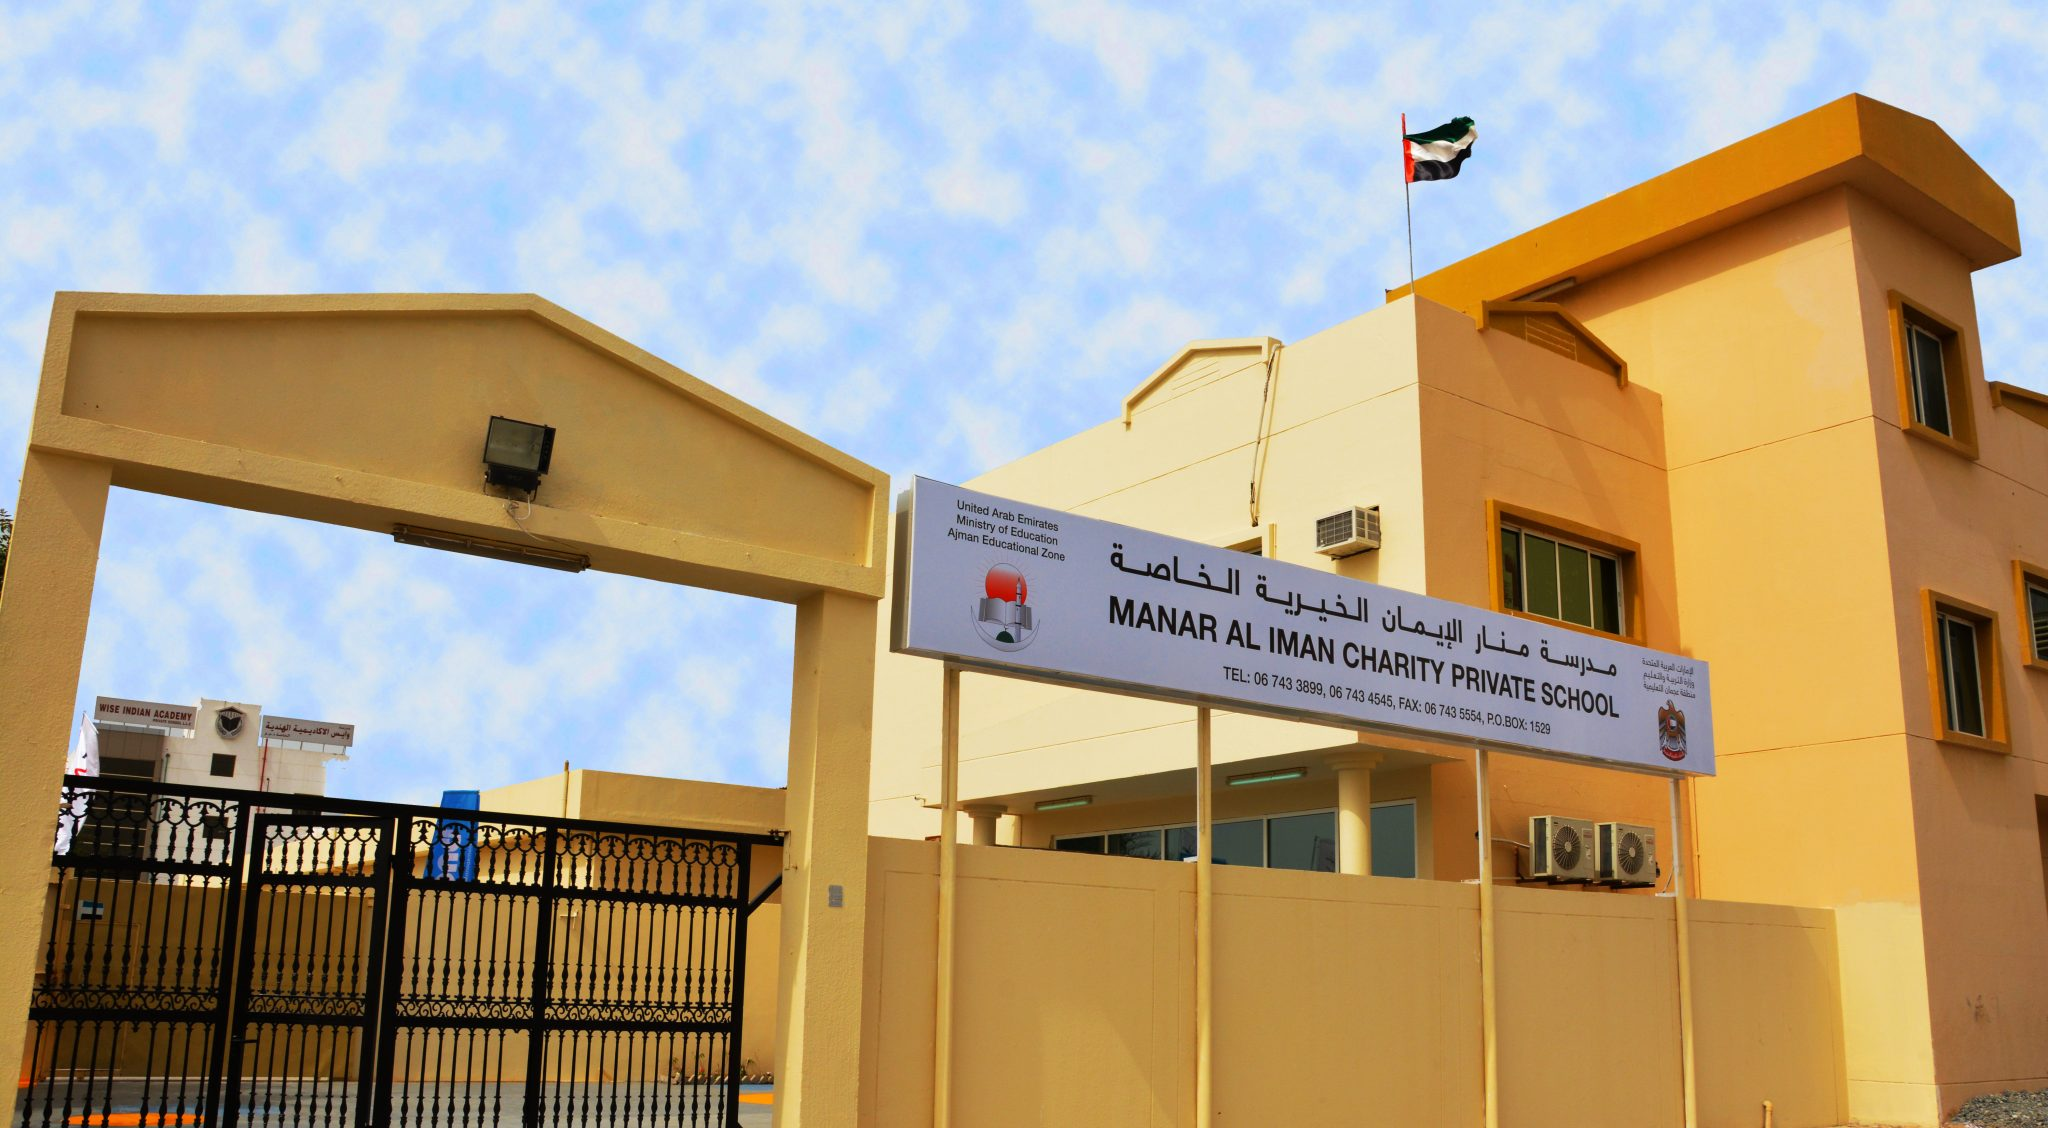 Image of the entrance and main school buildings of the Manar Al Iman Charity Private School in Ajman